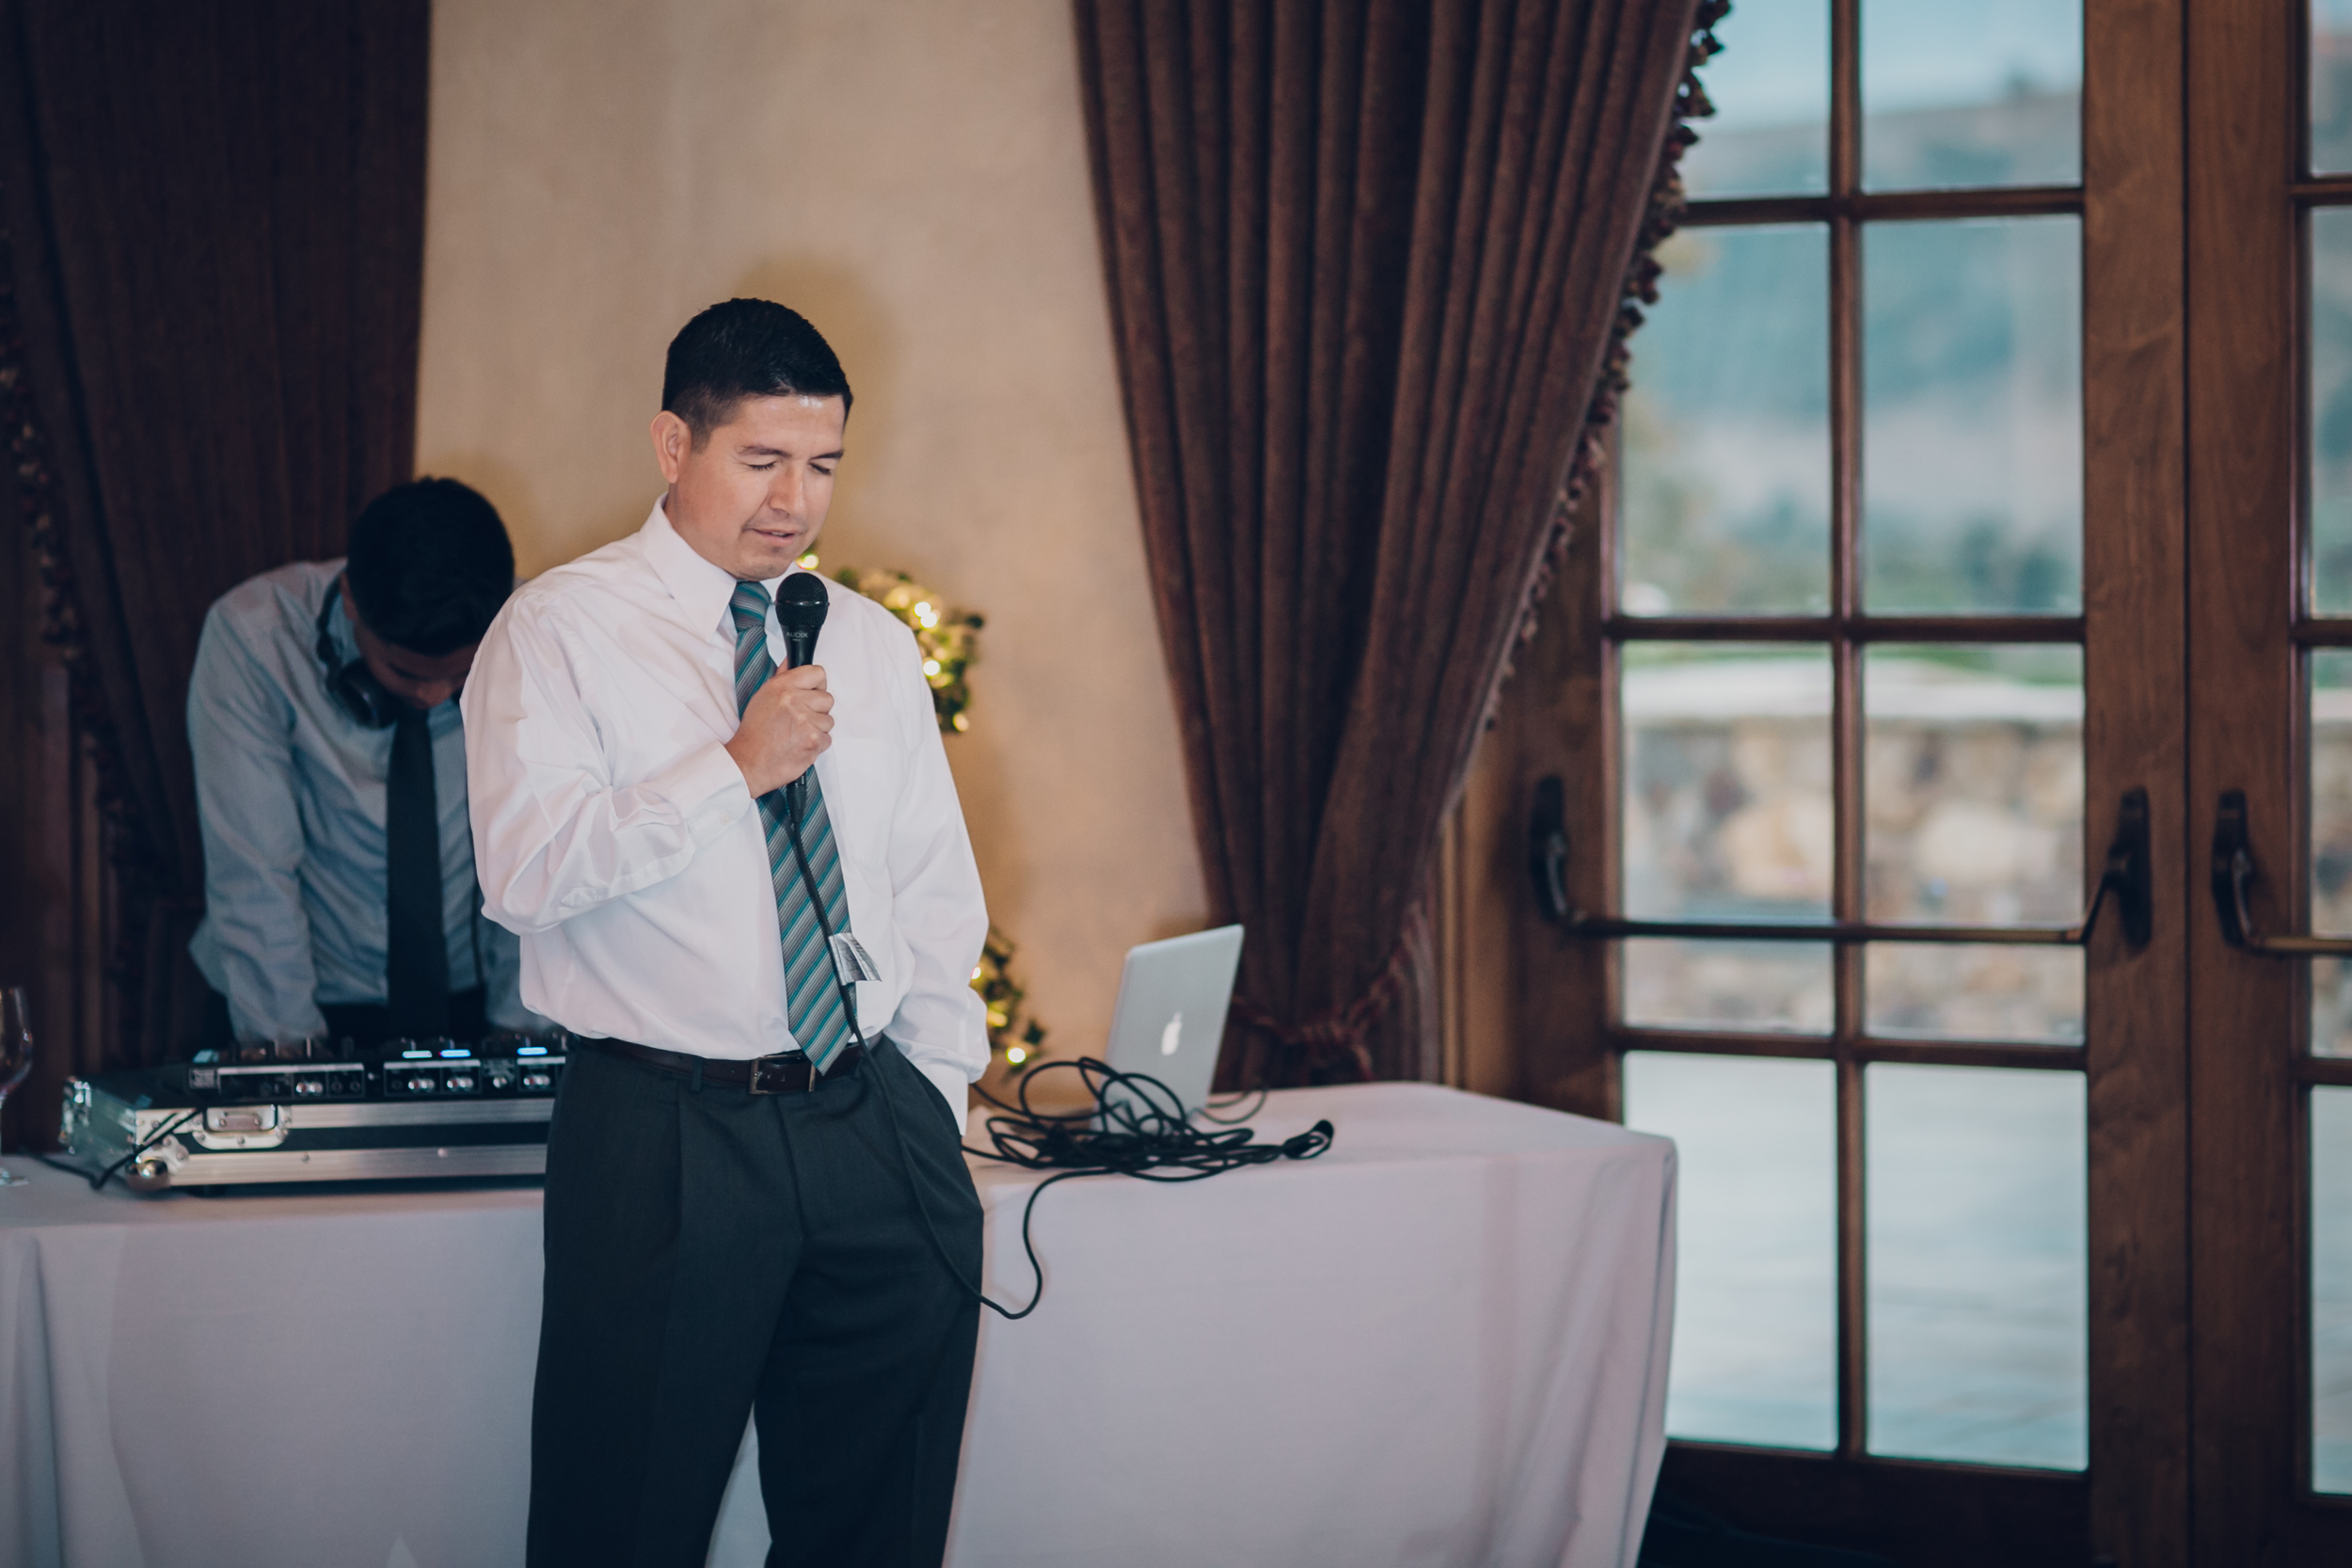 Shiela + Lester's Wedding 9-30-15 250.jpg